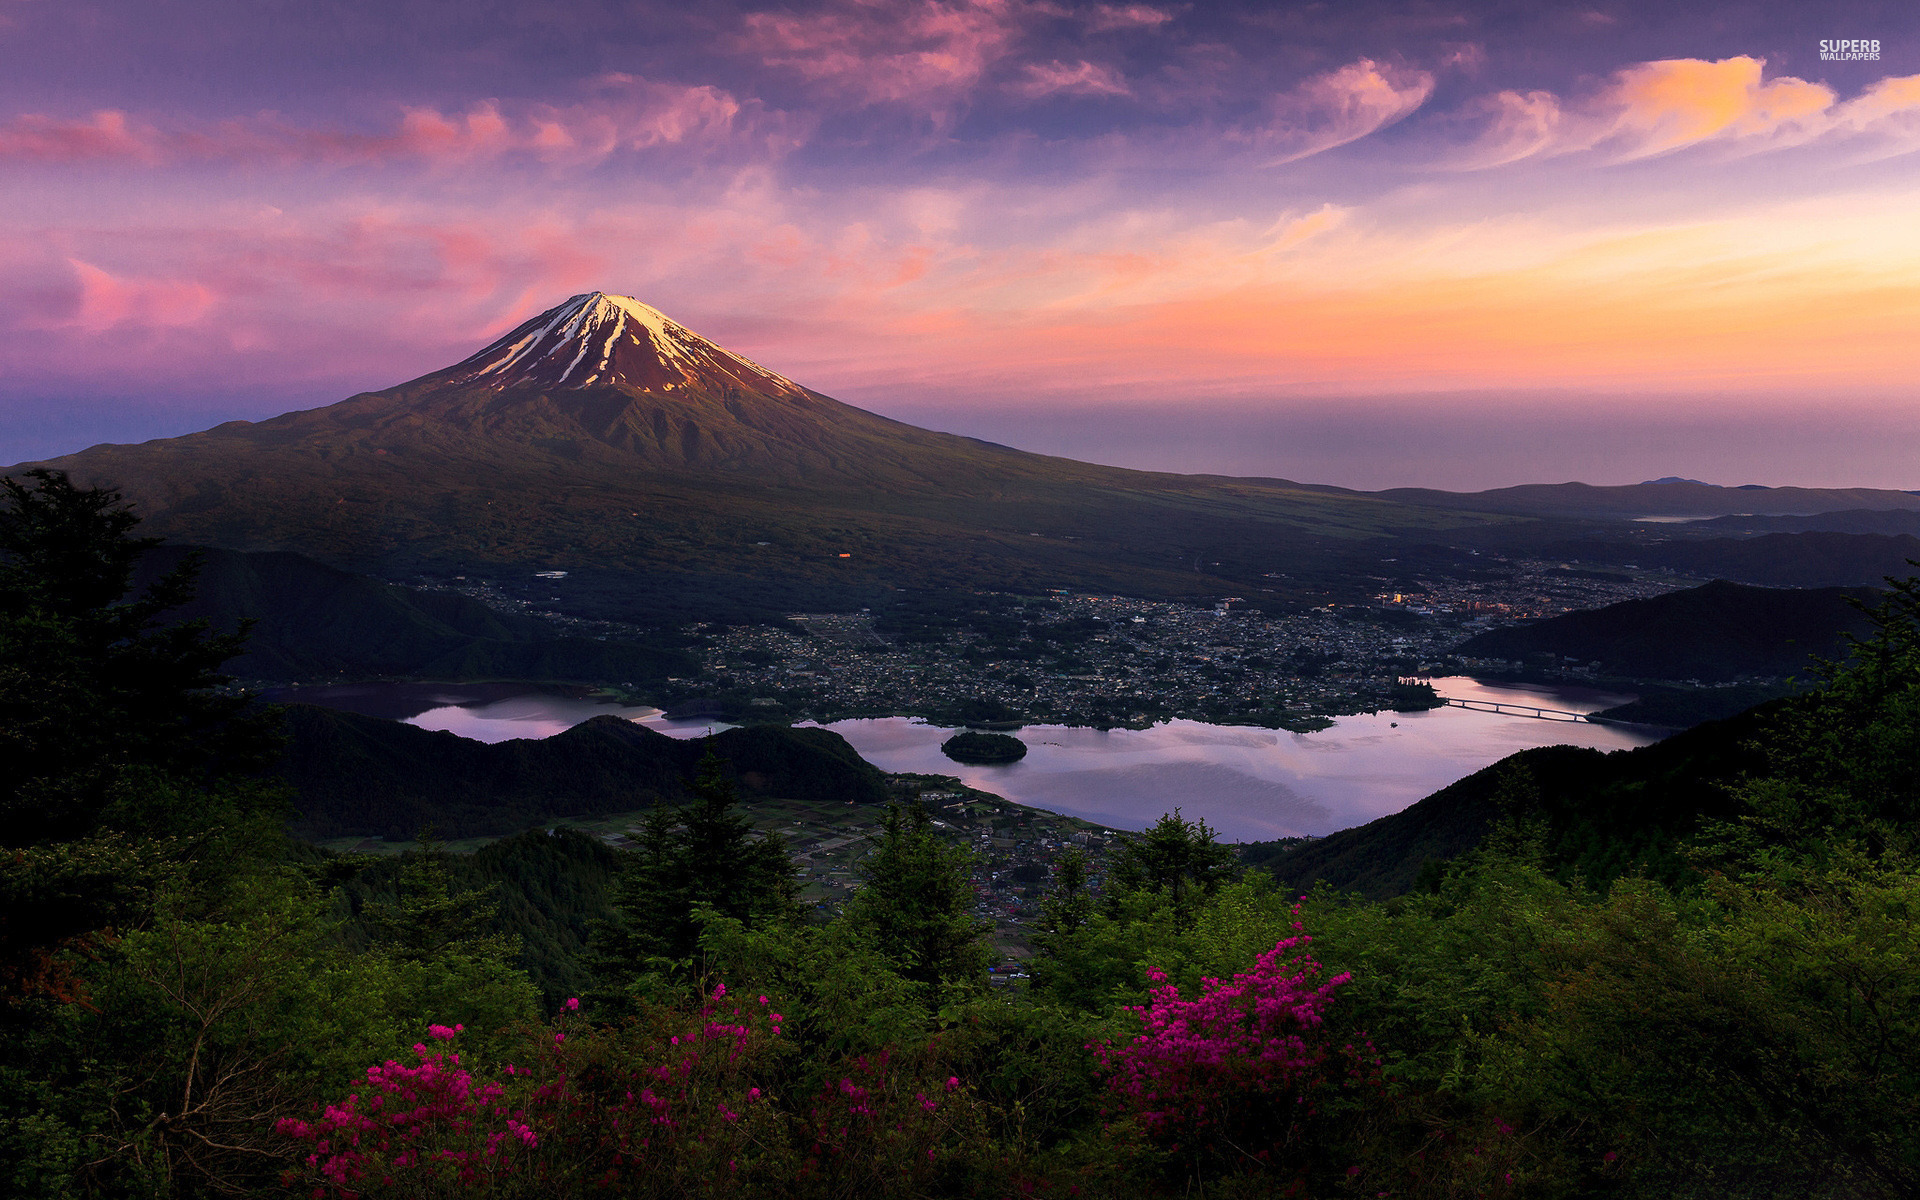 Mount Fuji Japan Asia wallpapers Mount Fuji Japan Asia 1920x1200